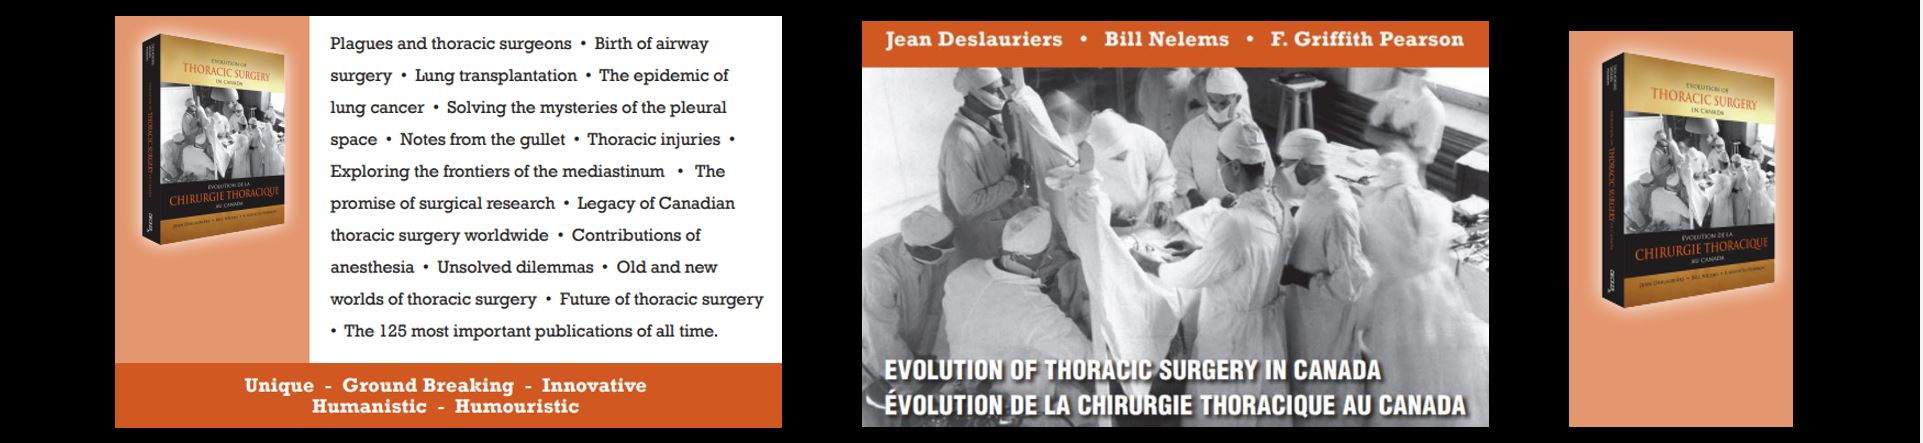 Evolution of Thoracic Surgery